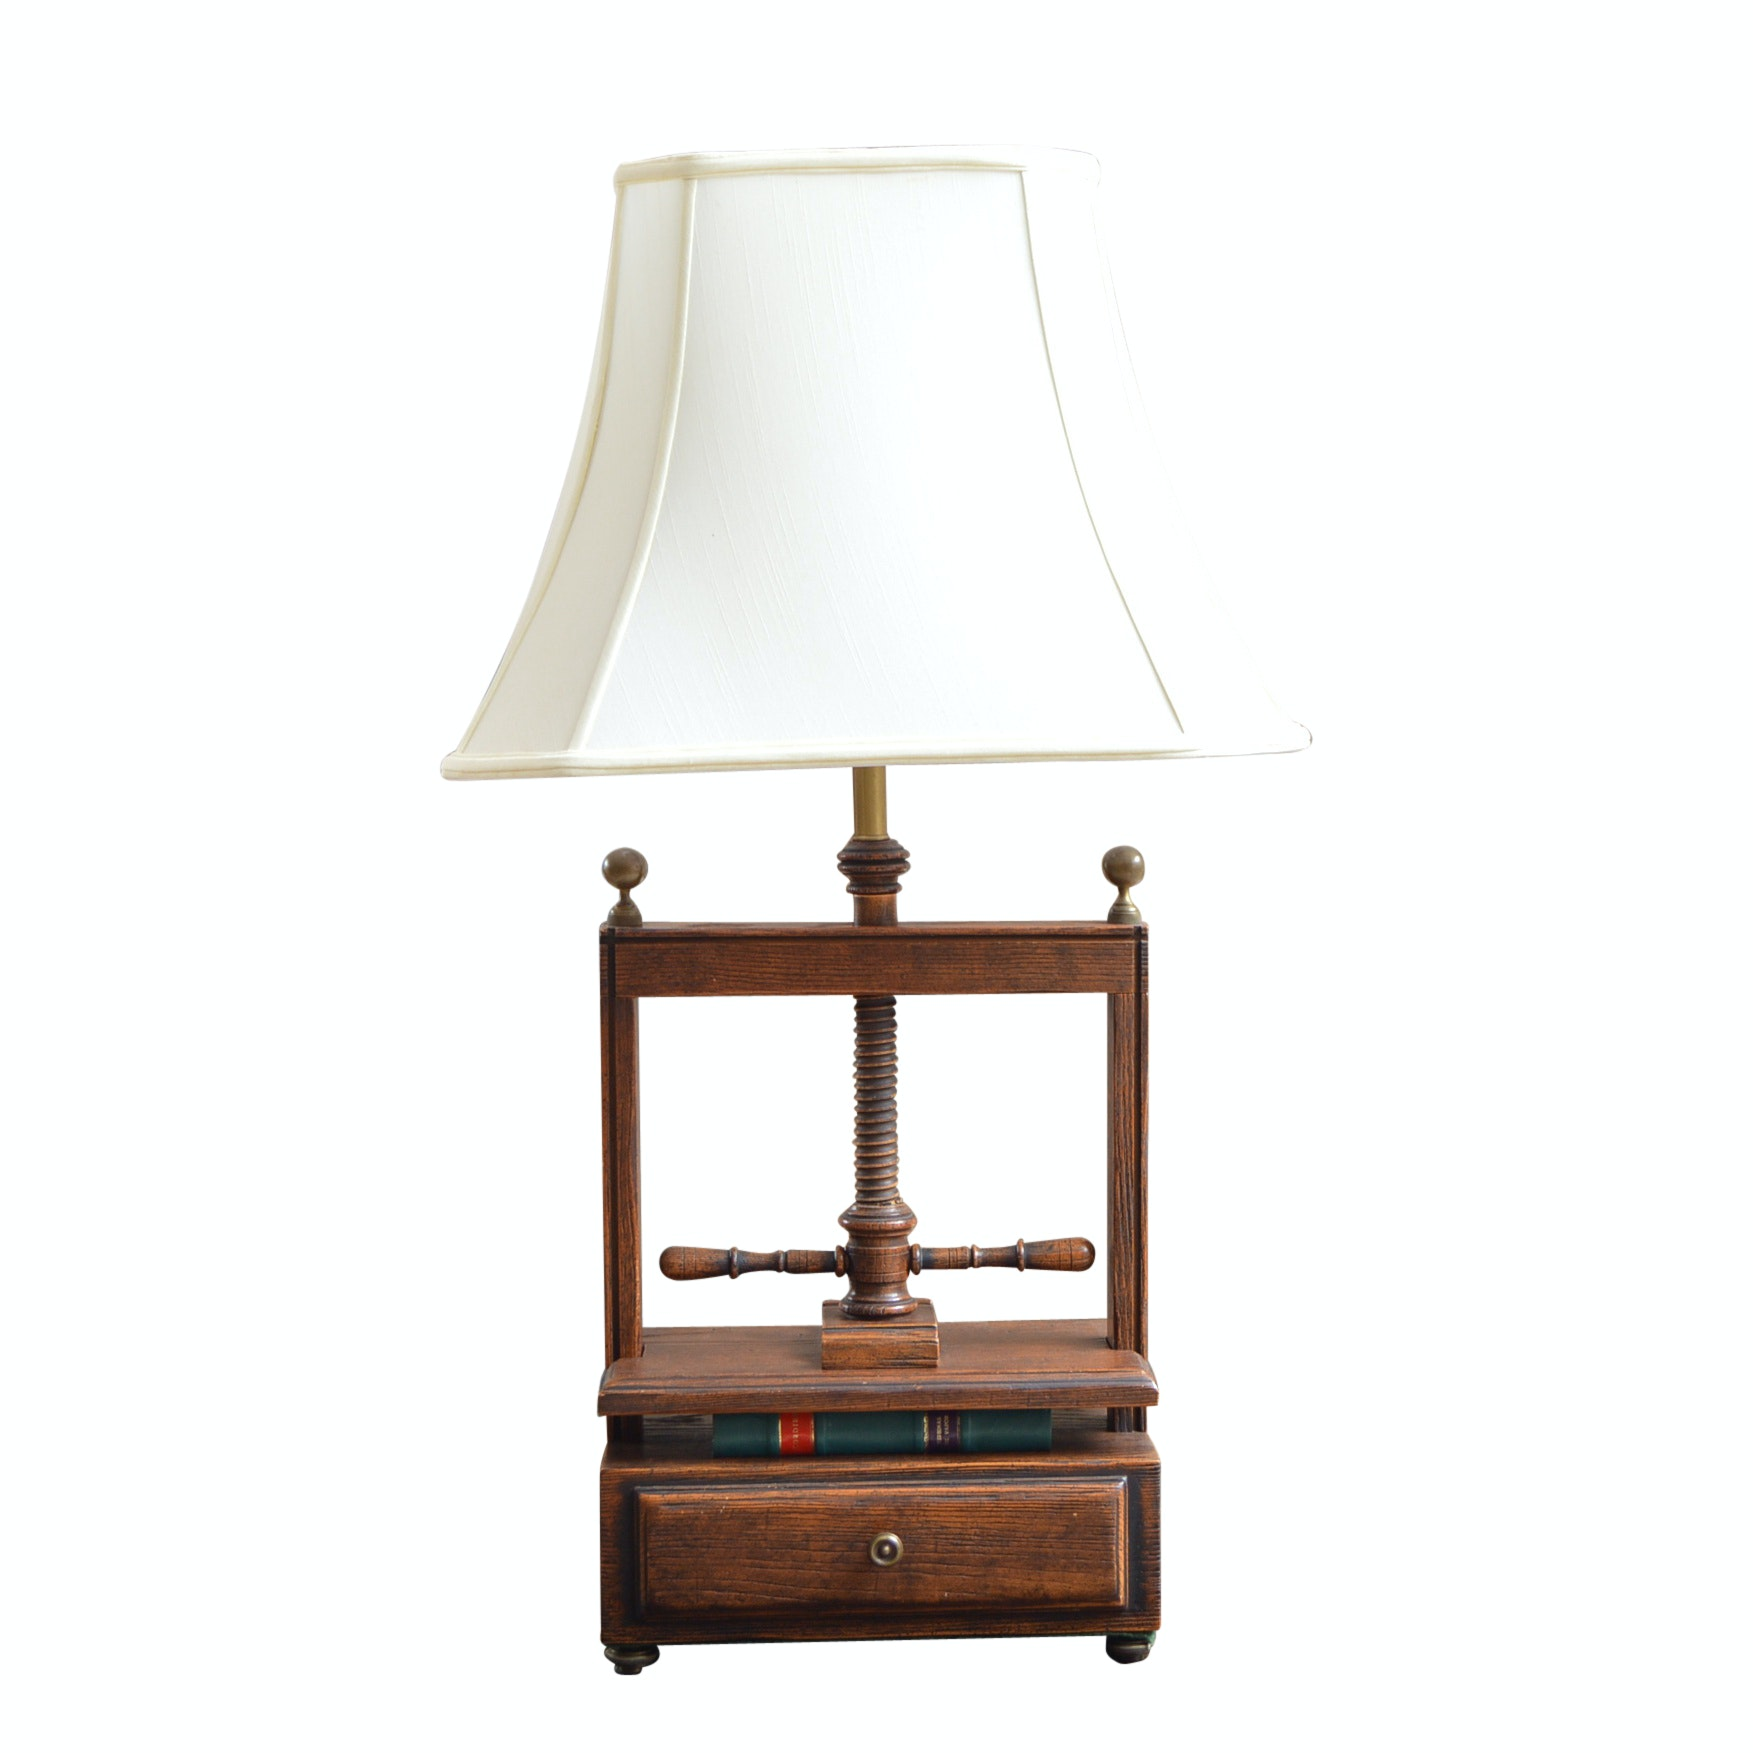 Reproduction Wooden Book Press Table Lamp